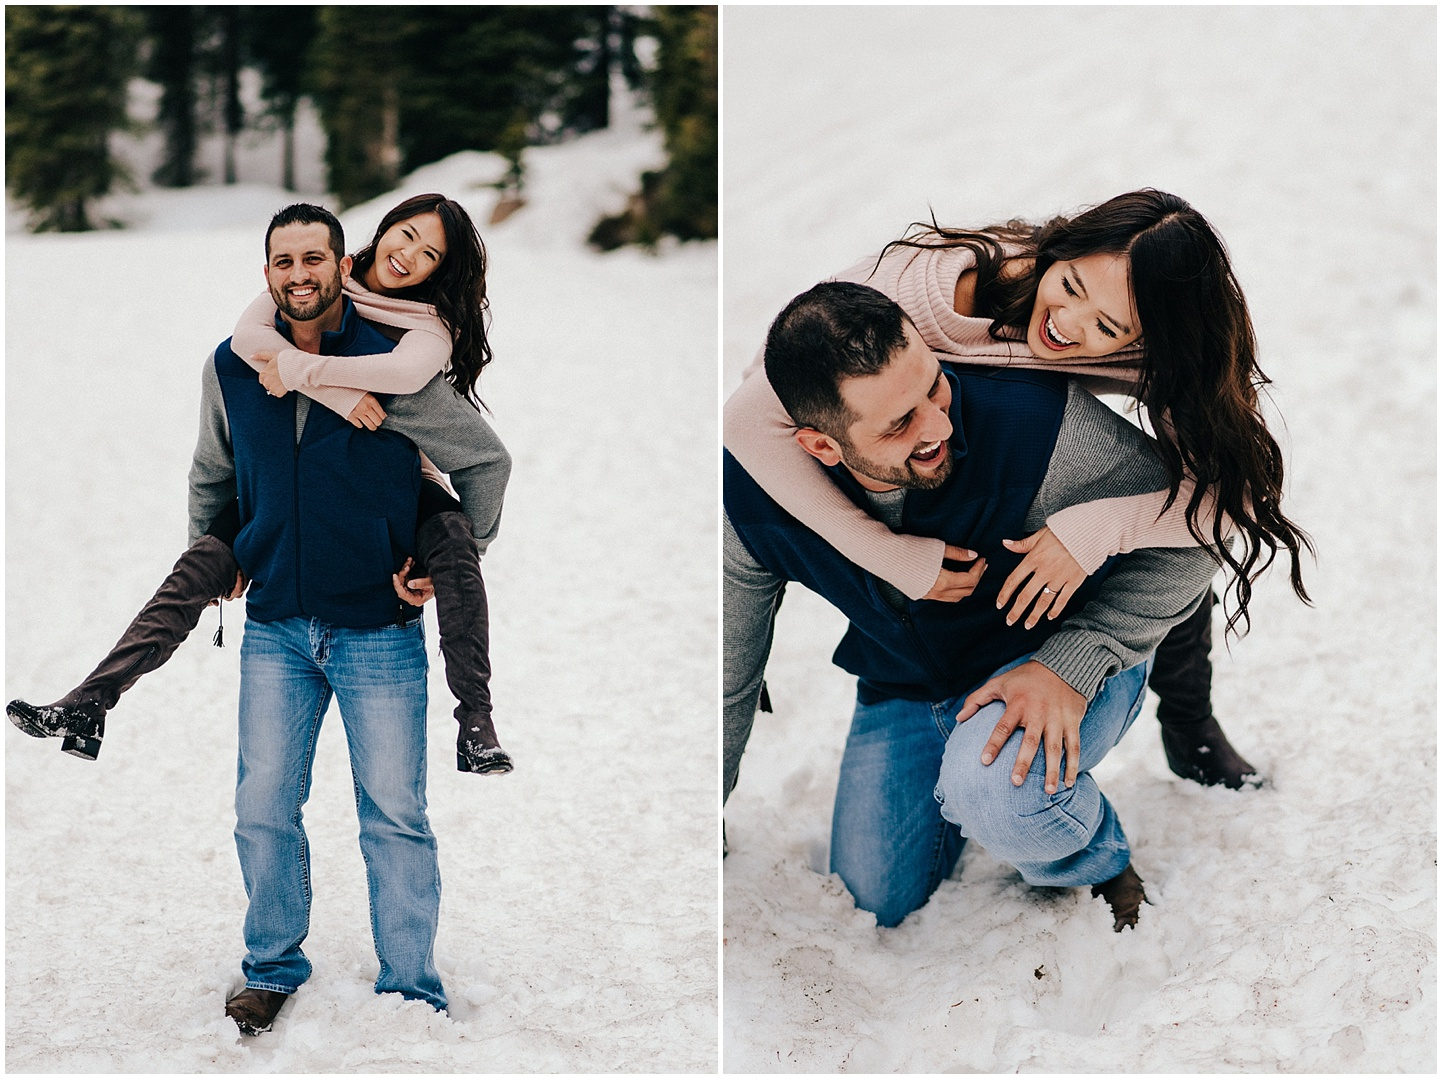 Celina & Steve playing in the snow during their Winter Park engagement session.